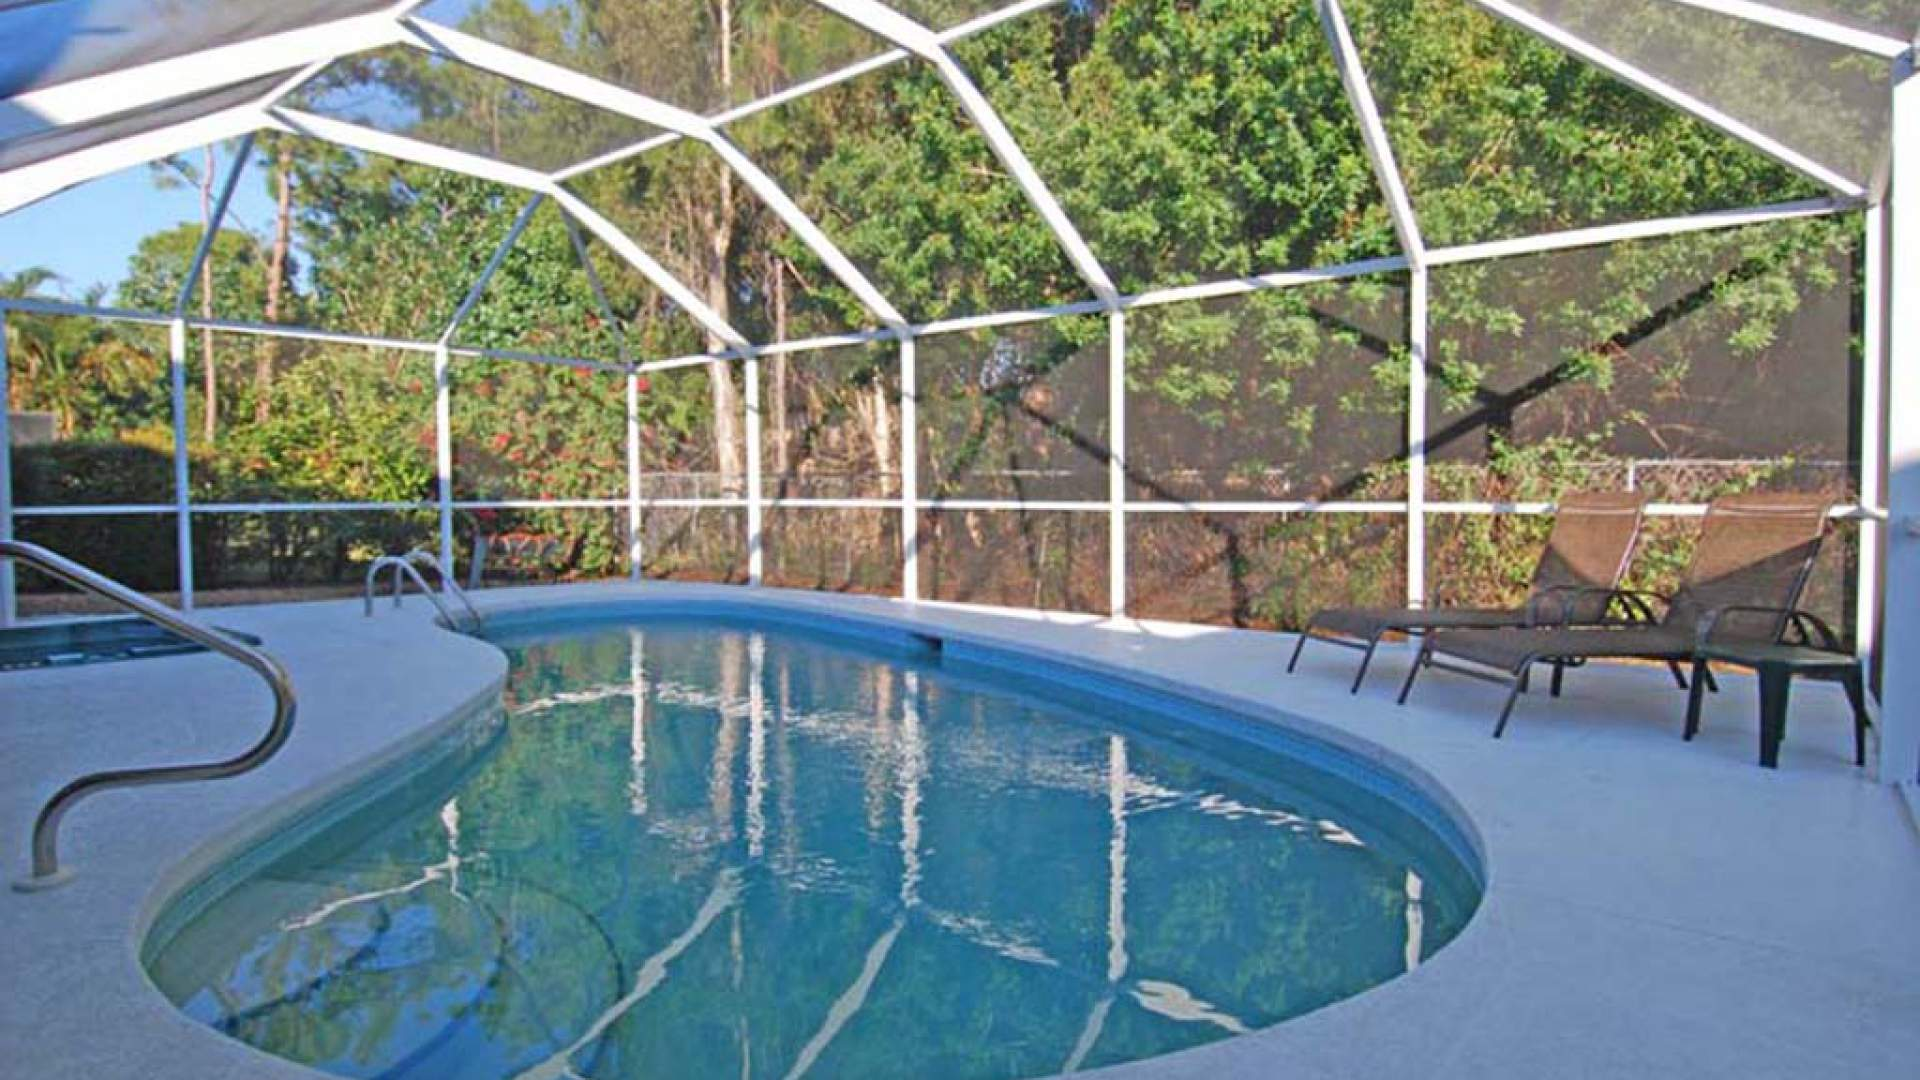 The kidney shaped pool can be electrically heated